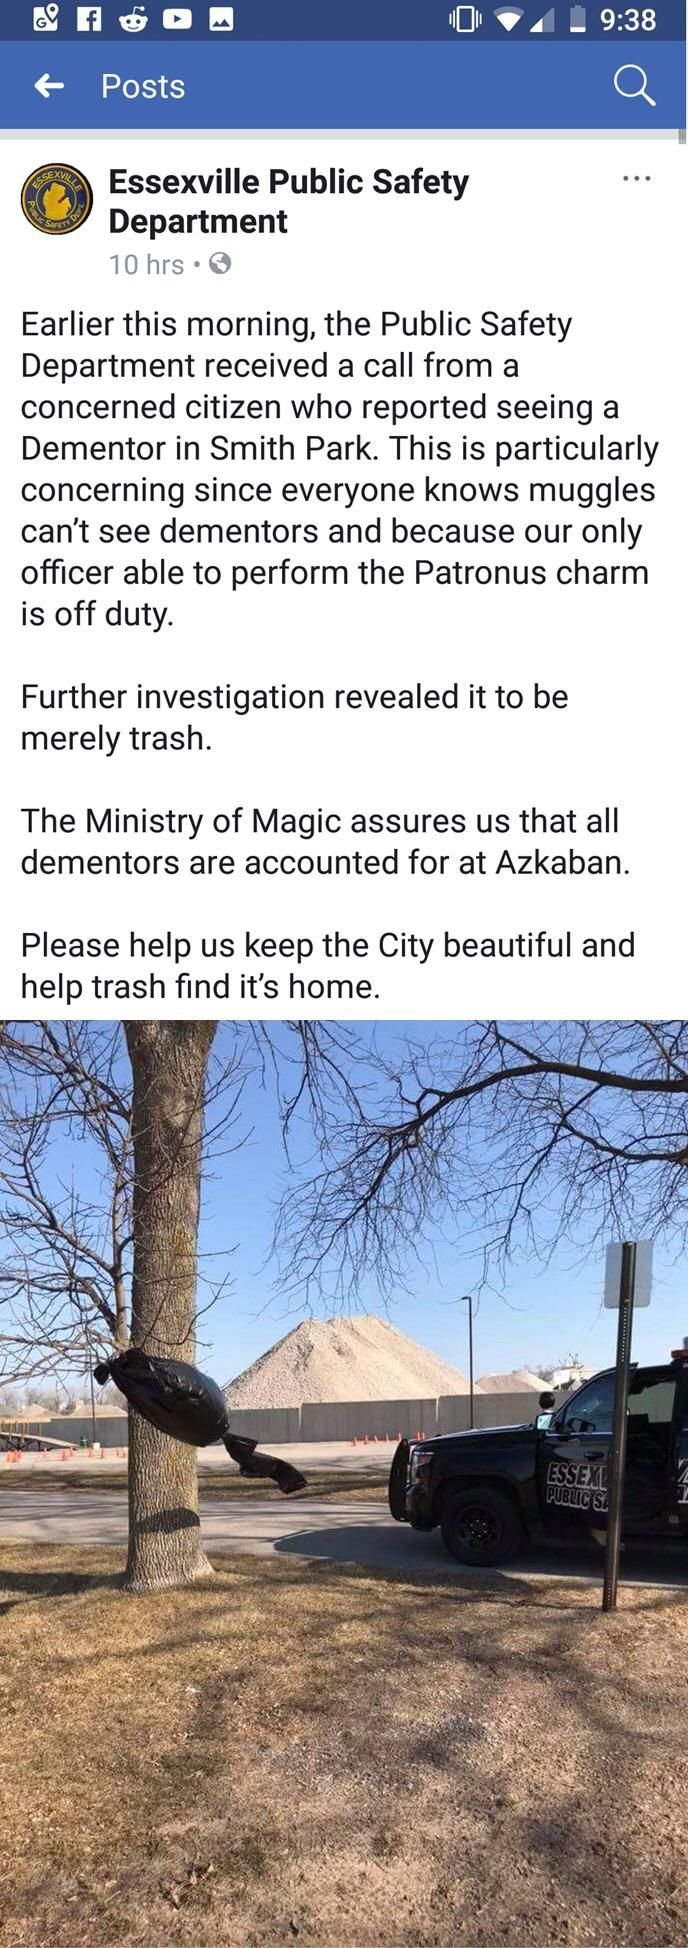 """Police take on a Harry Potter """"Dementor"""" in a local park and report about it on Facebook."""